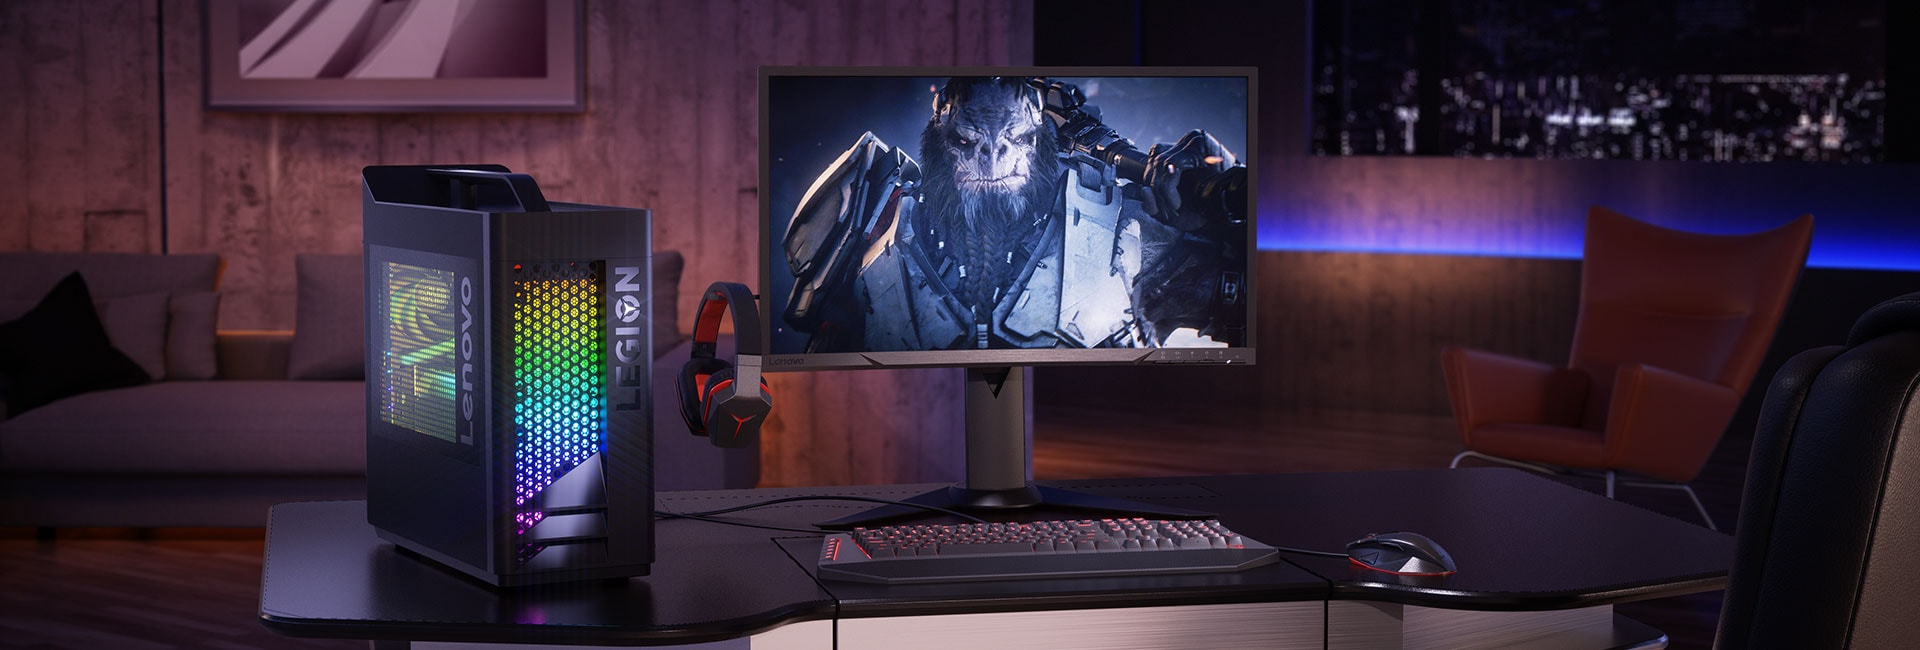 Lenovo Legion C530 gaming tower, with keyboard and monitor